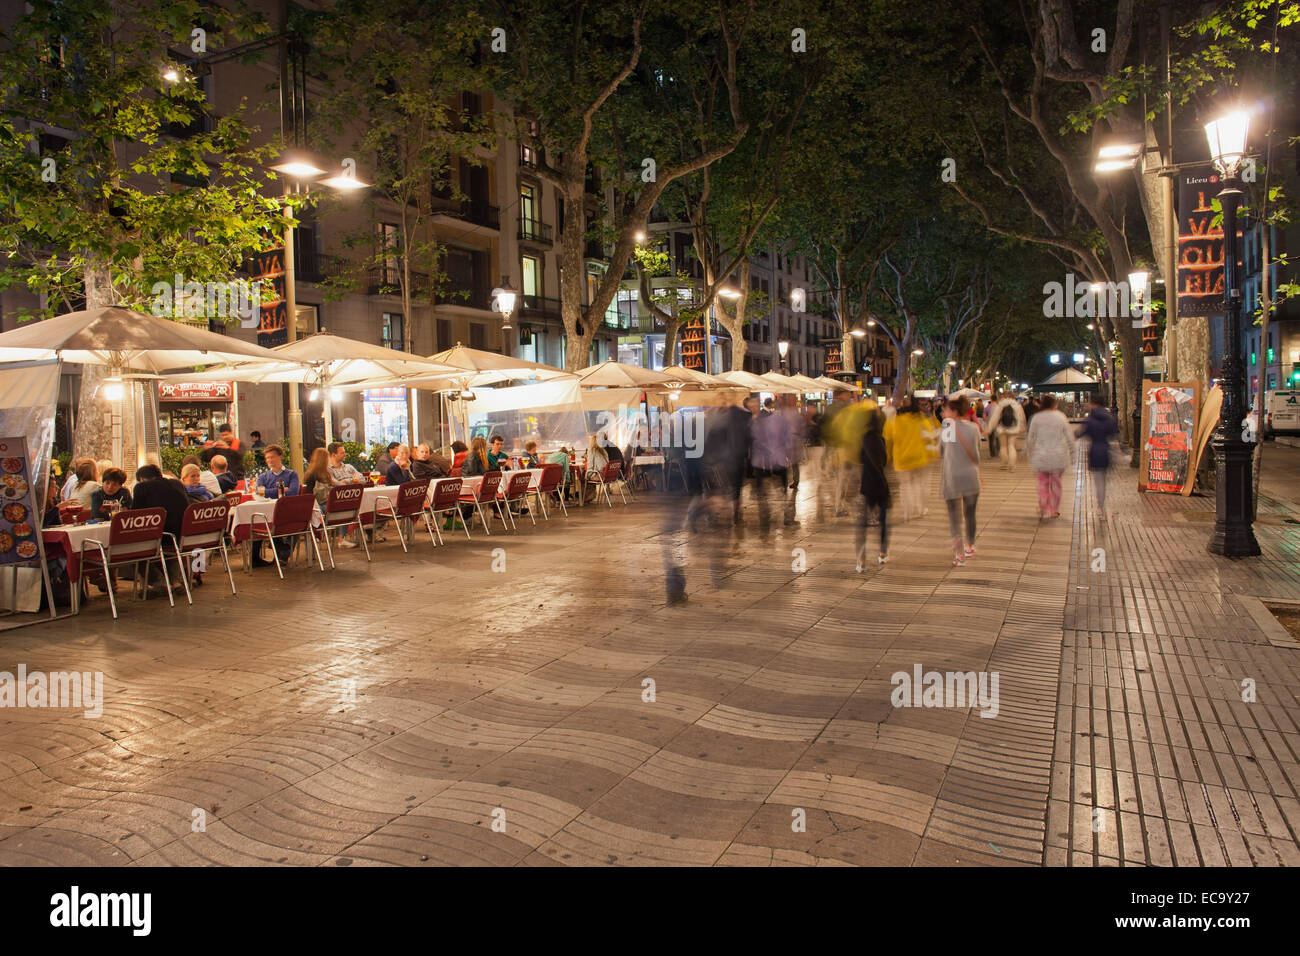 la rambla at night in barcelona catalonia spain stock photo royalty free image 76436143 alamy. Black Bedroom Furniture Sets. Home Design Ideas